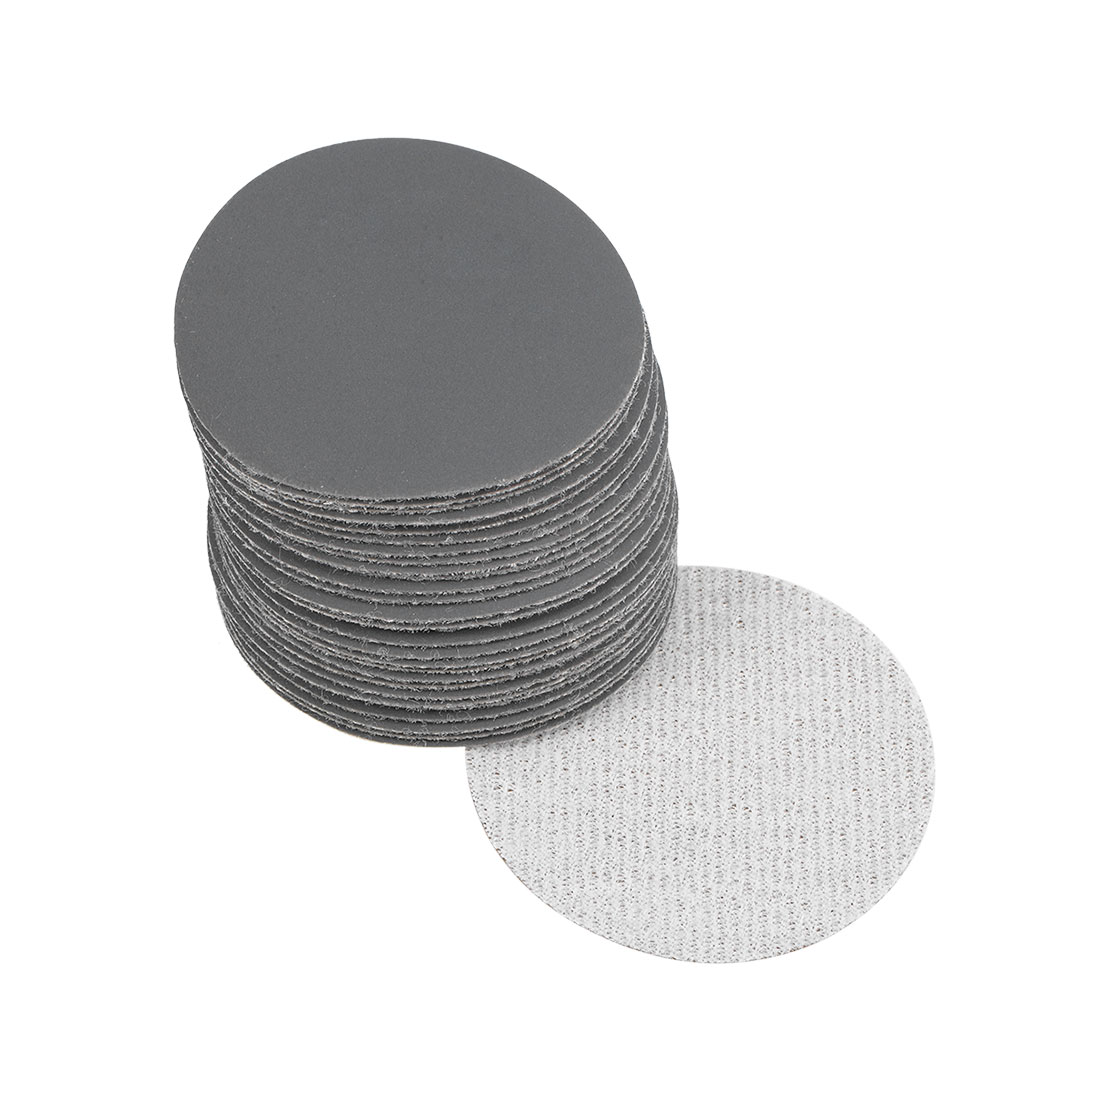 2 inch Wet Dry Discs 1500 Grit Hook and Loop Sanding Disc Silicon Carbide 30pcs